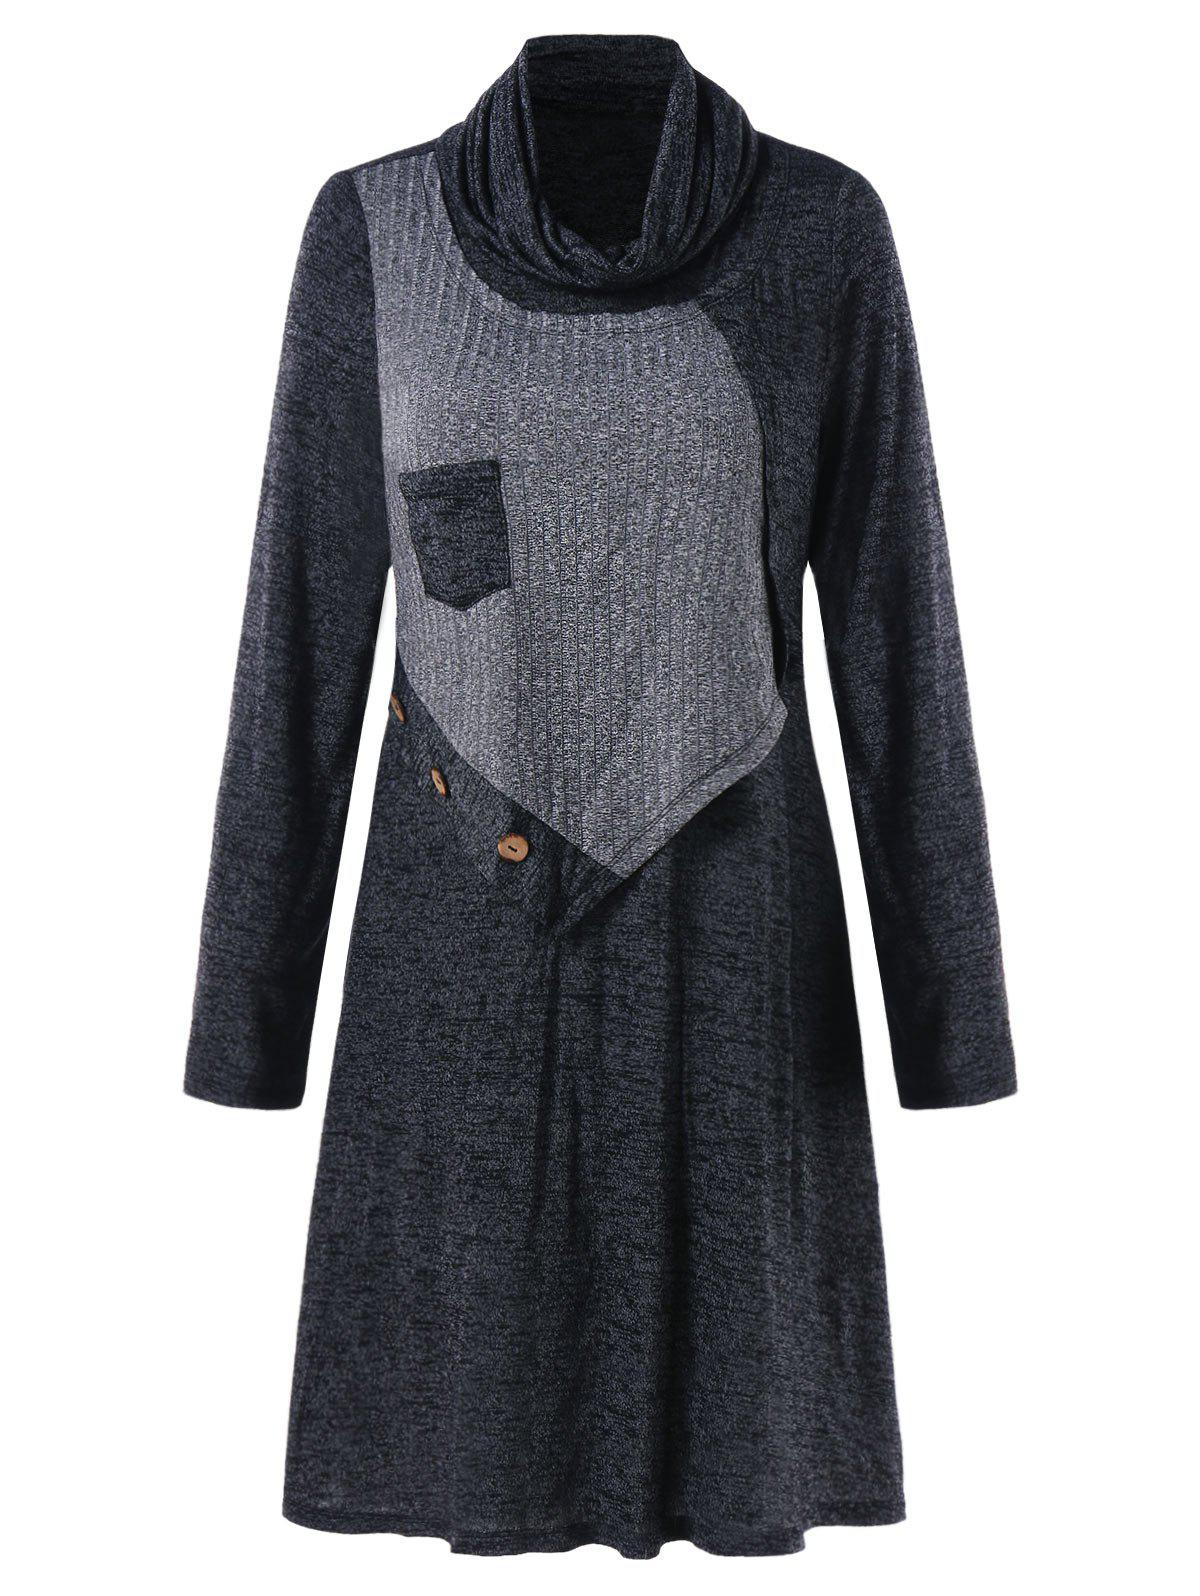 Turtleneck Marled Swing Dress - DARK GRAY XL